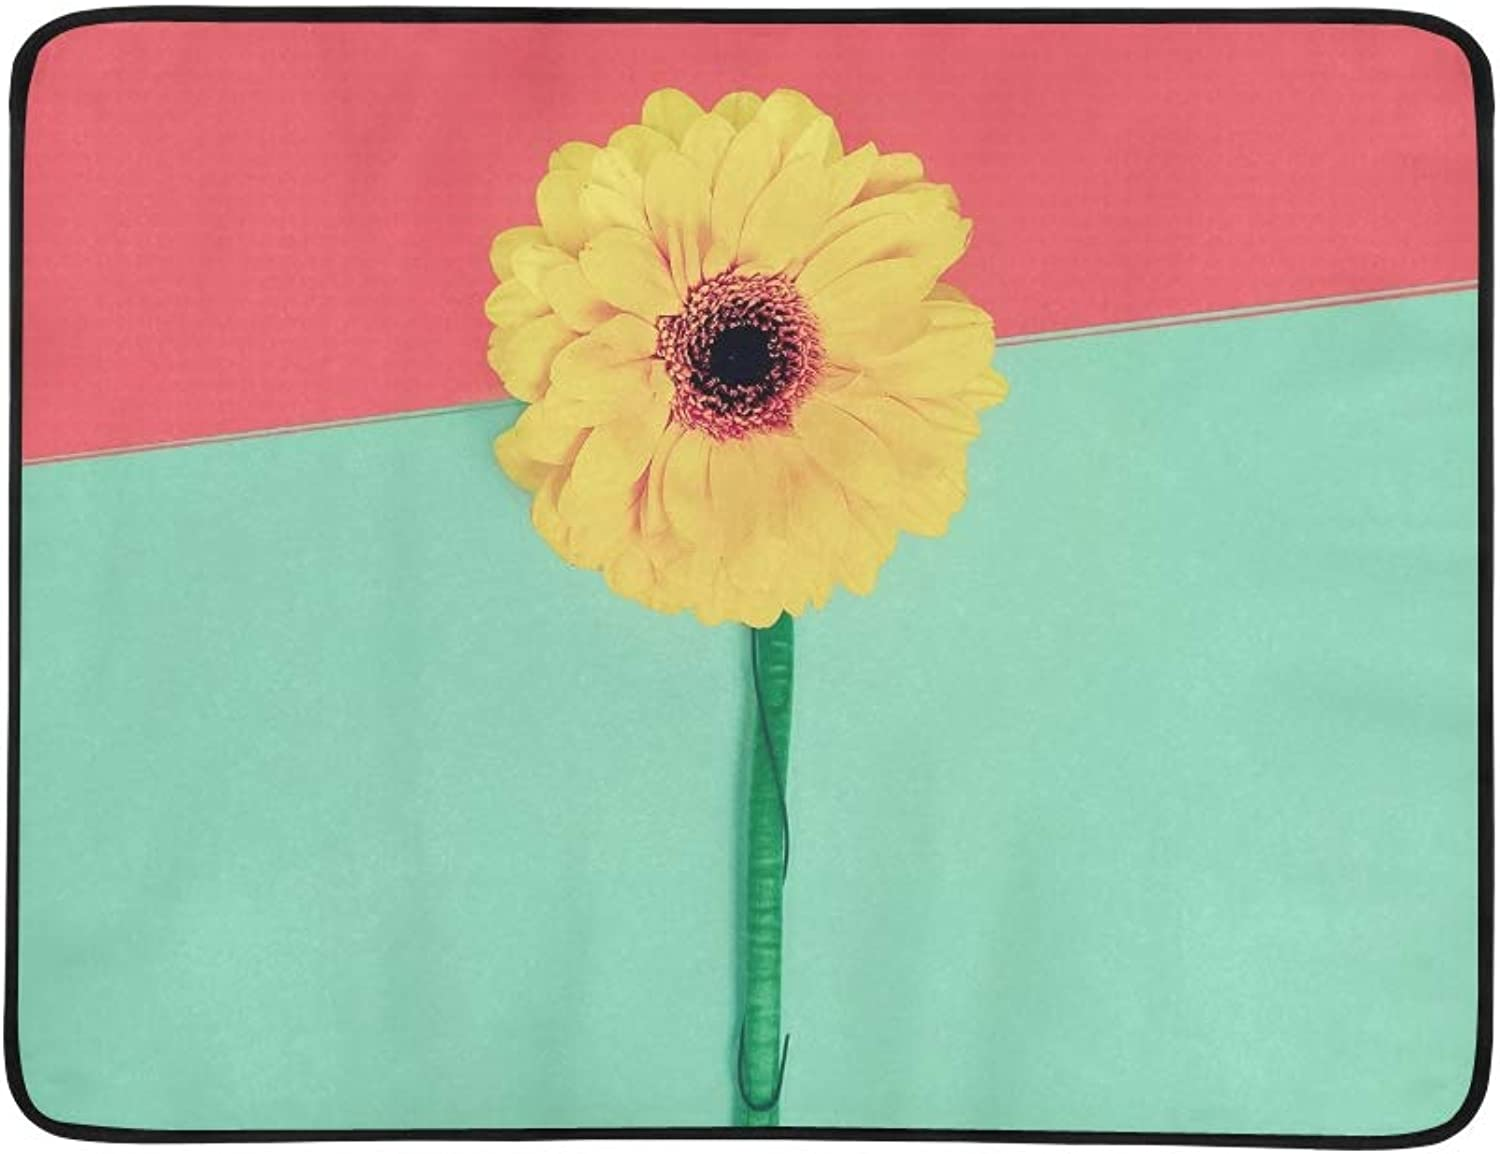 Bright Gerber Flower On Paper Portable and Foldable Blanket Mat 60x78 Inch Handy Mat for Camping Picnic Beach Indoor Outdoor Travel